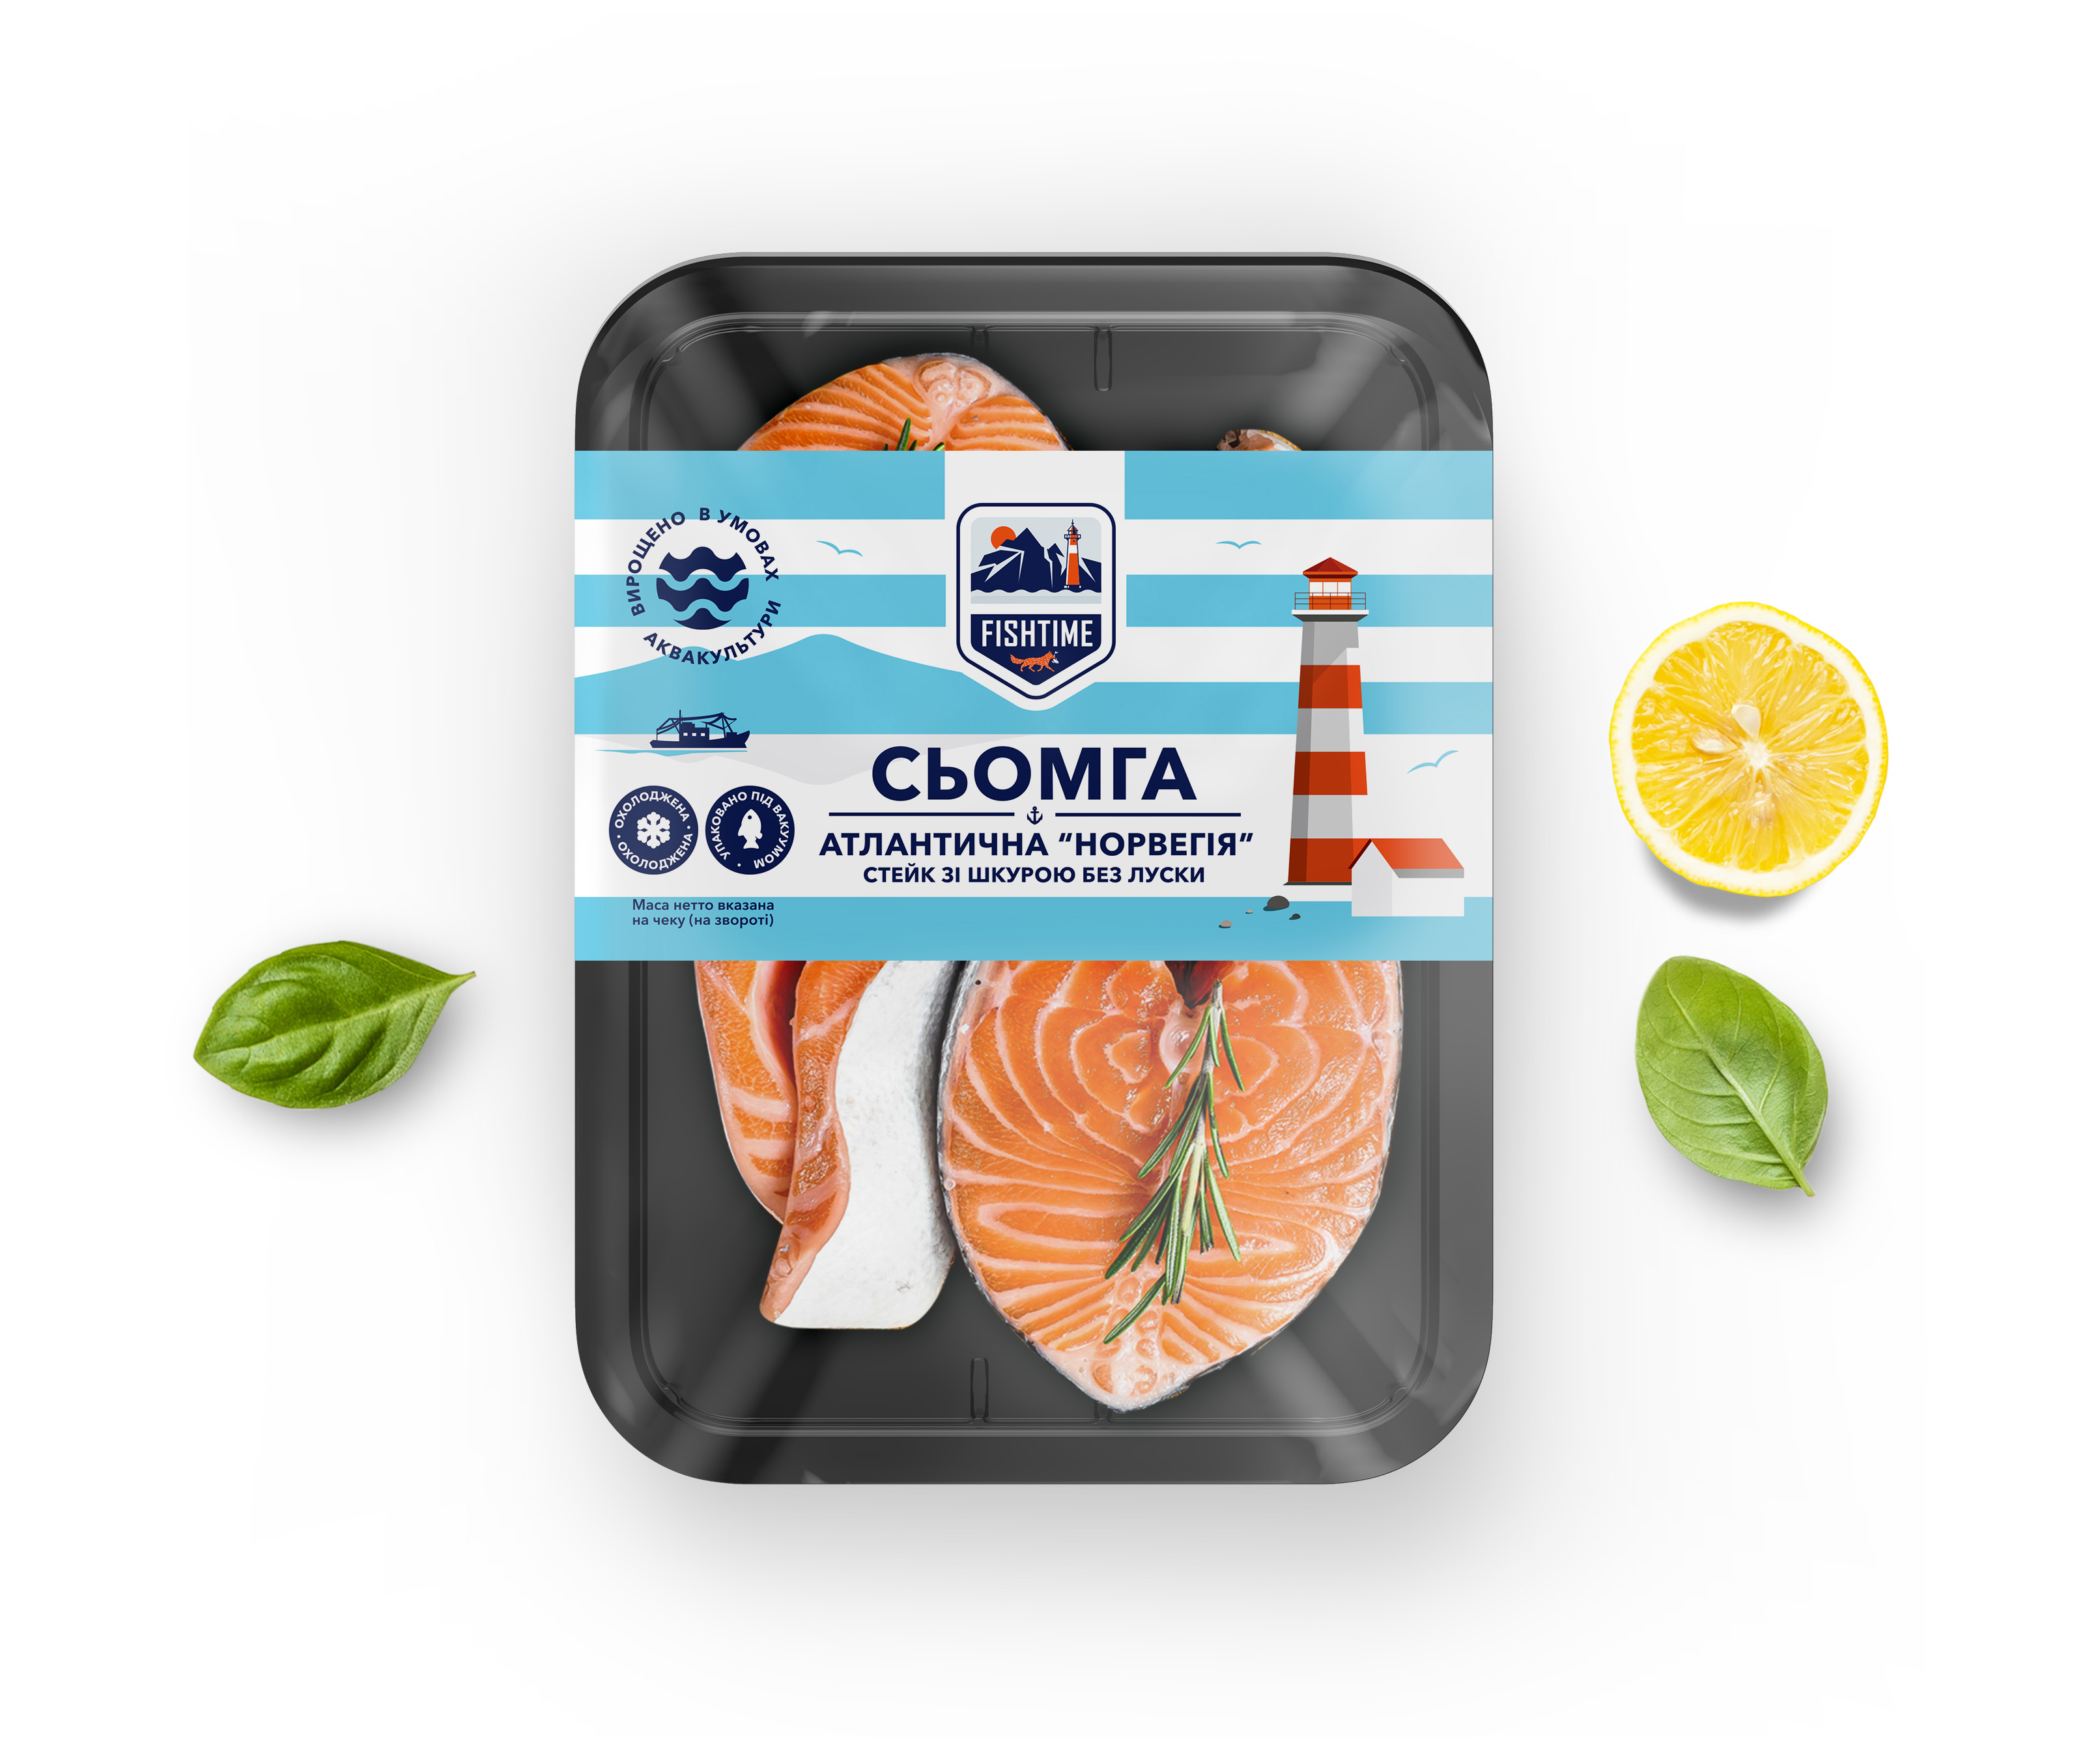 Fishtime New Series of Seafood Products Designed by Olga Takhtarova